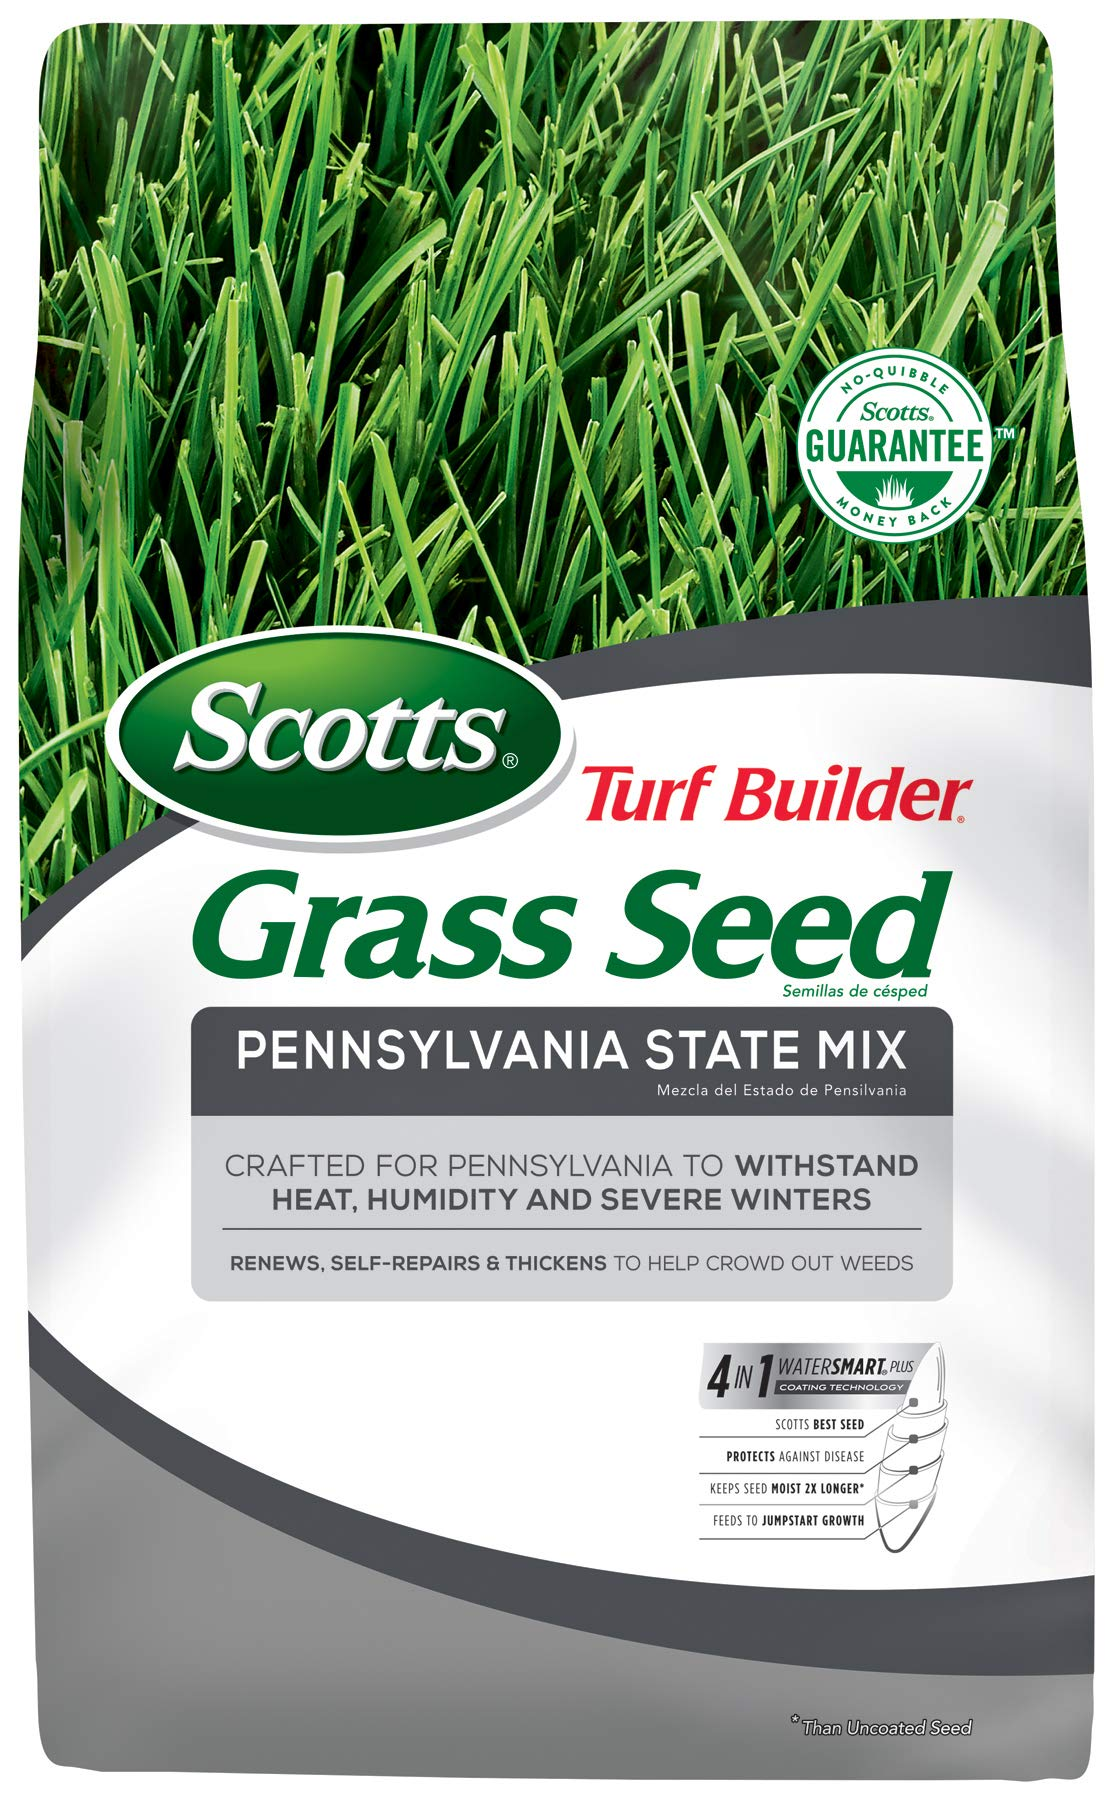 Scotts Turf Builder Grass Seed - Pennsylvania State Mix, 20-Pound (Not Sold in Louisiana) by Scotts (Image #1)